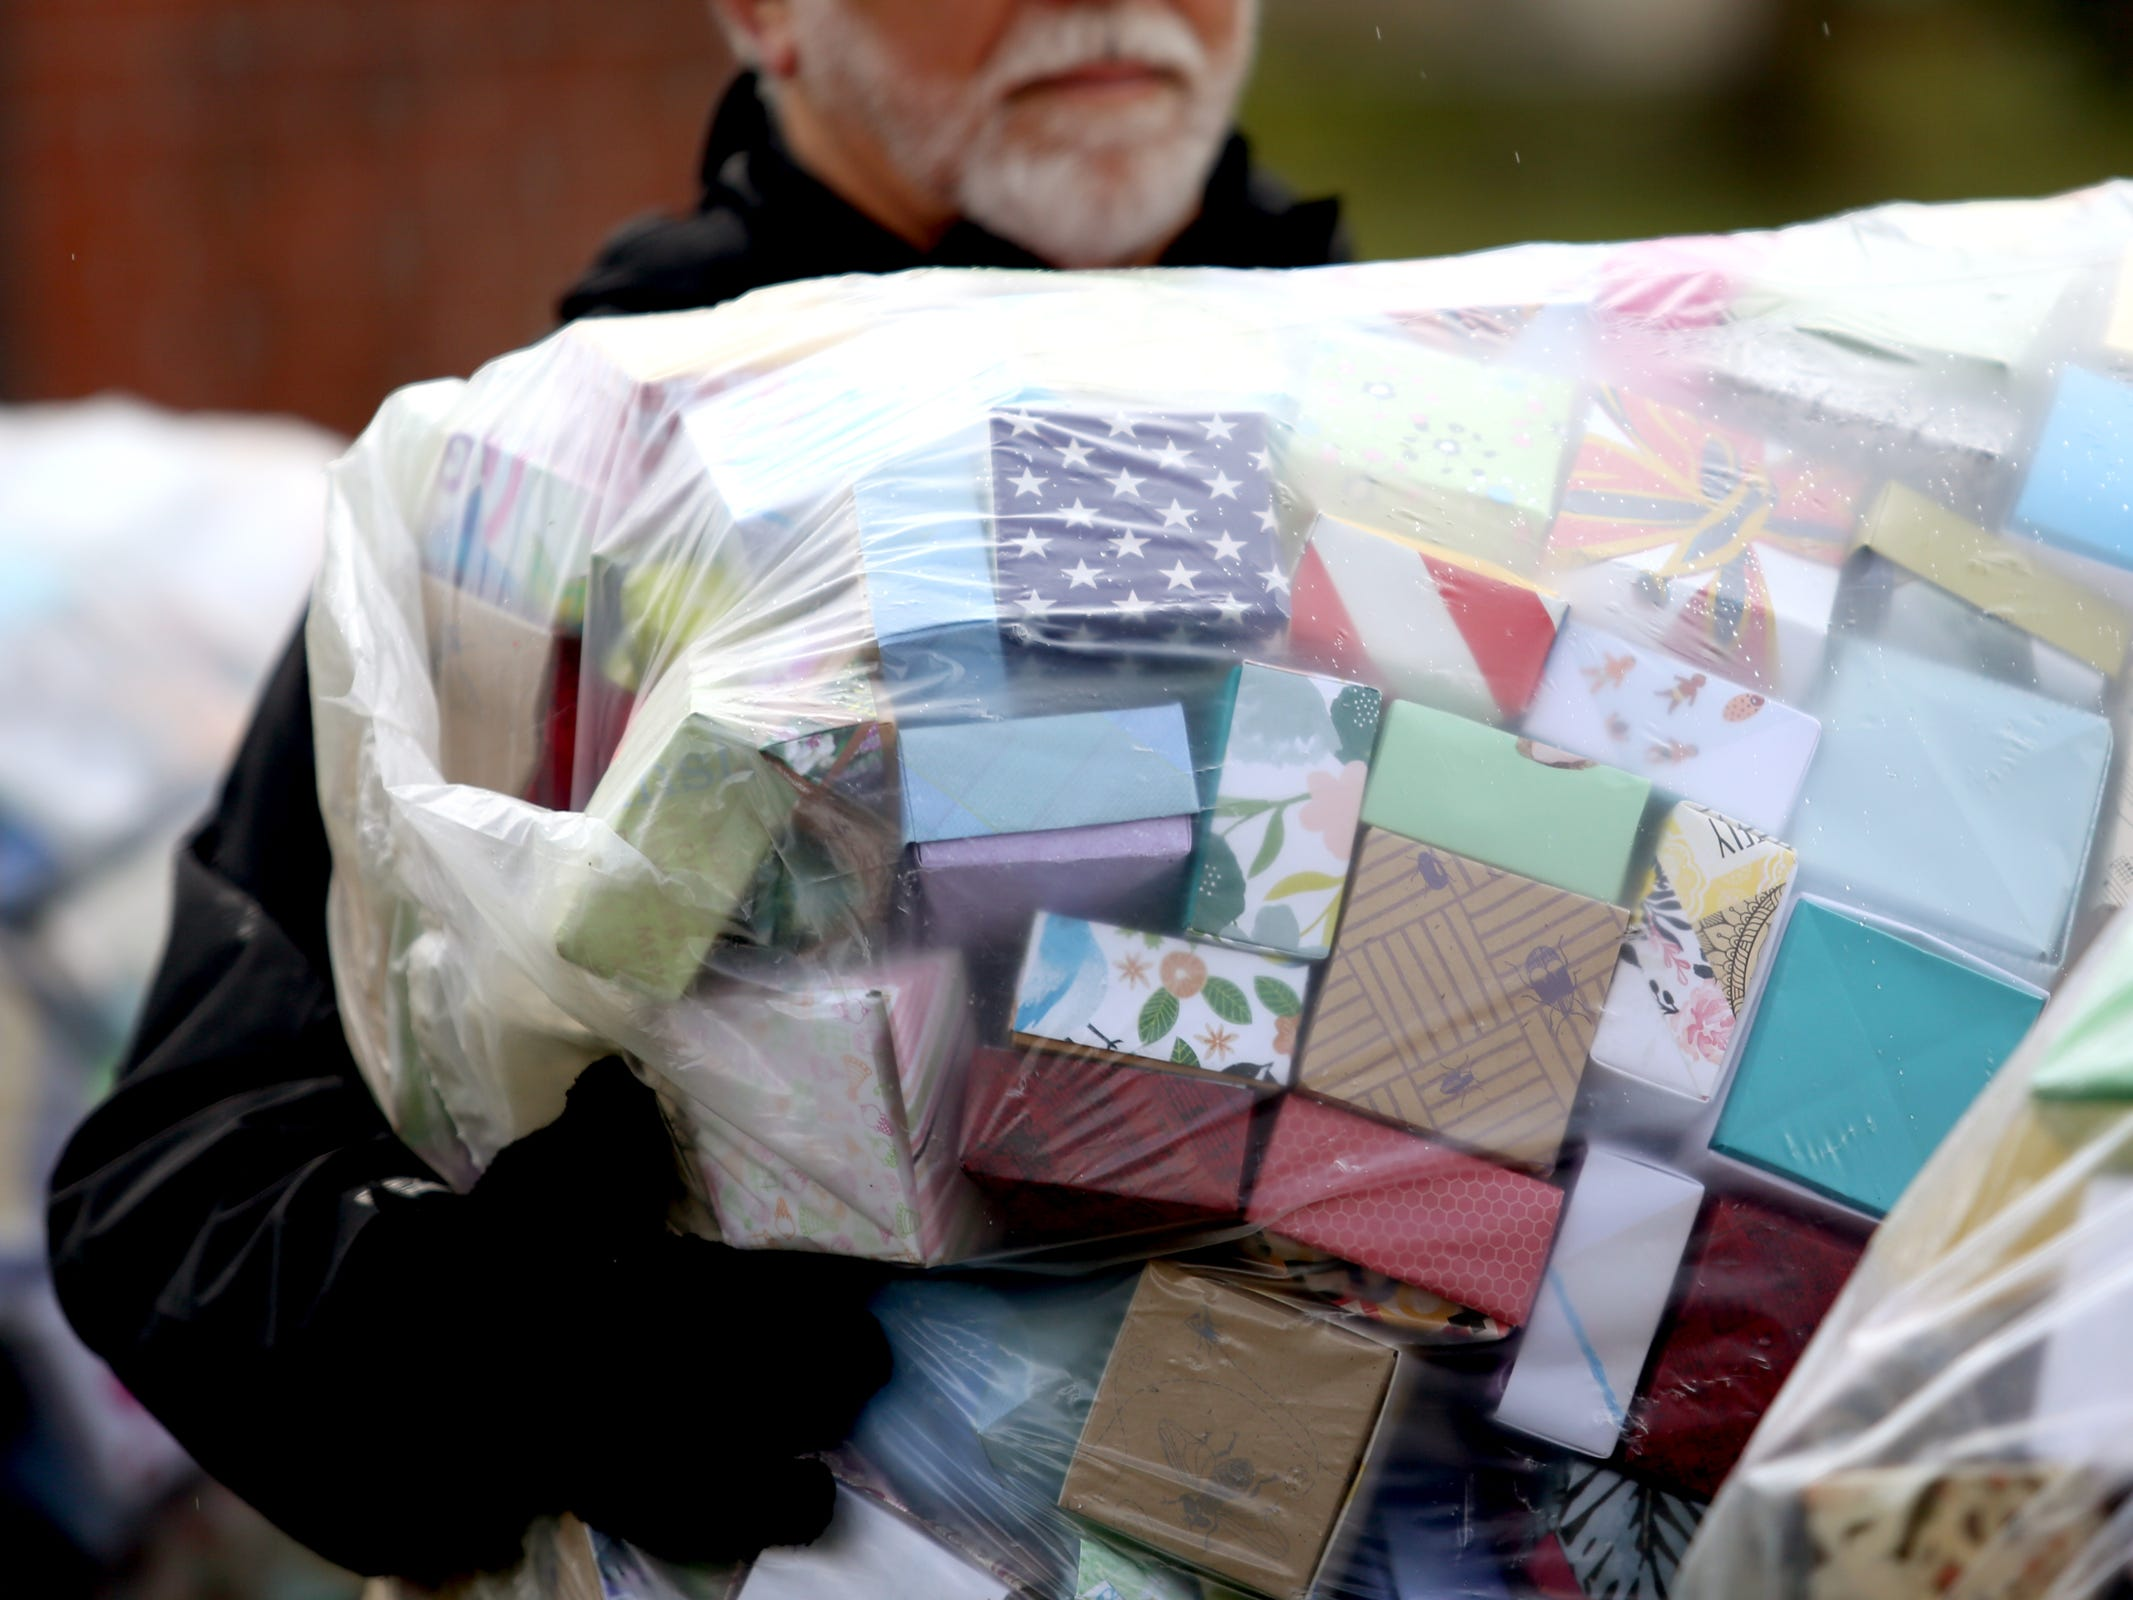 More than 100 people deliver and display more than 37,000 handmade origami boxes, representing victims of gun violence, at the Oregon State Capitol in Salem on Friday, Feb. 15, 2019. The Soul Box Project, started by Portland artist Leslie Lee, aims to reveal the enormity of the gun fire epidemic.